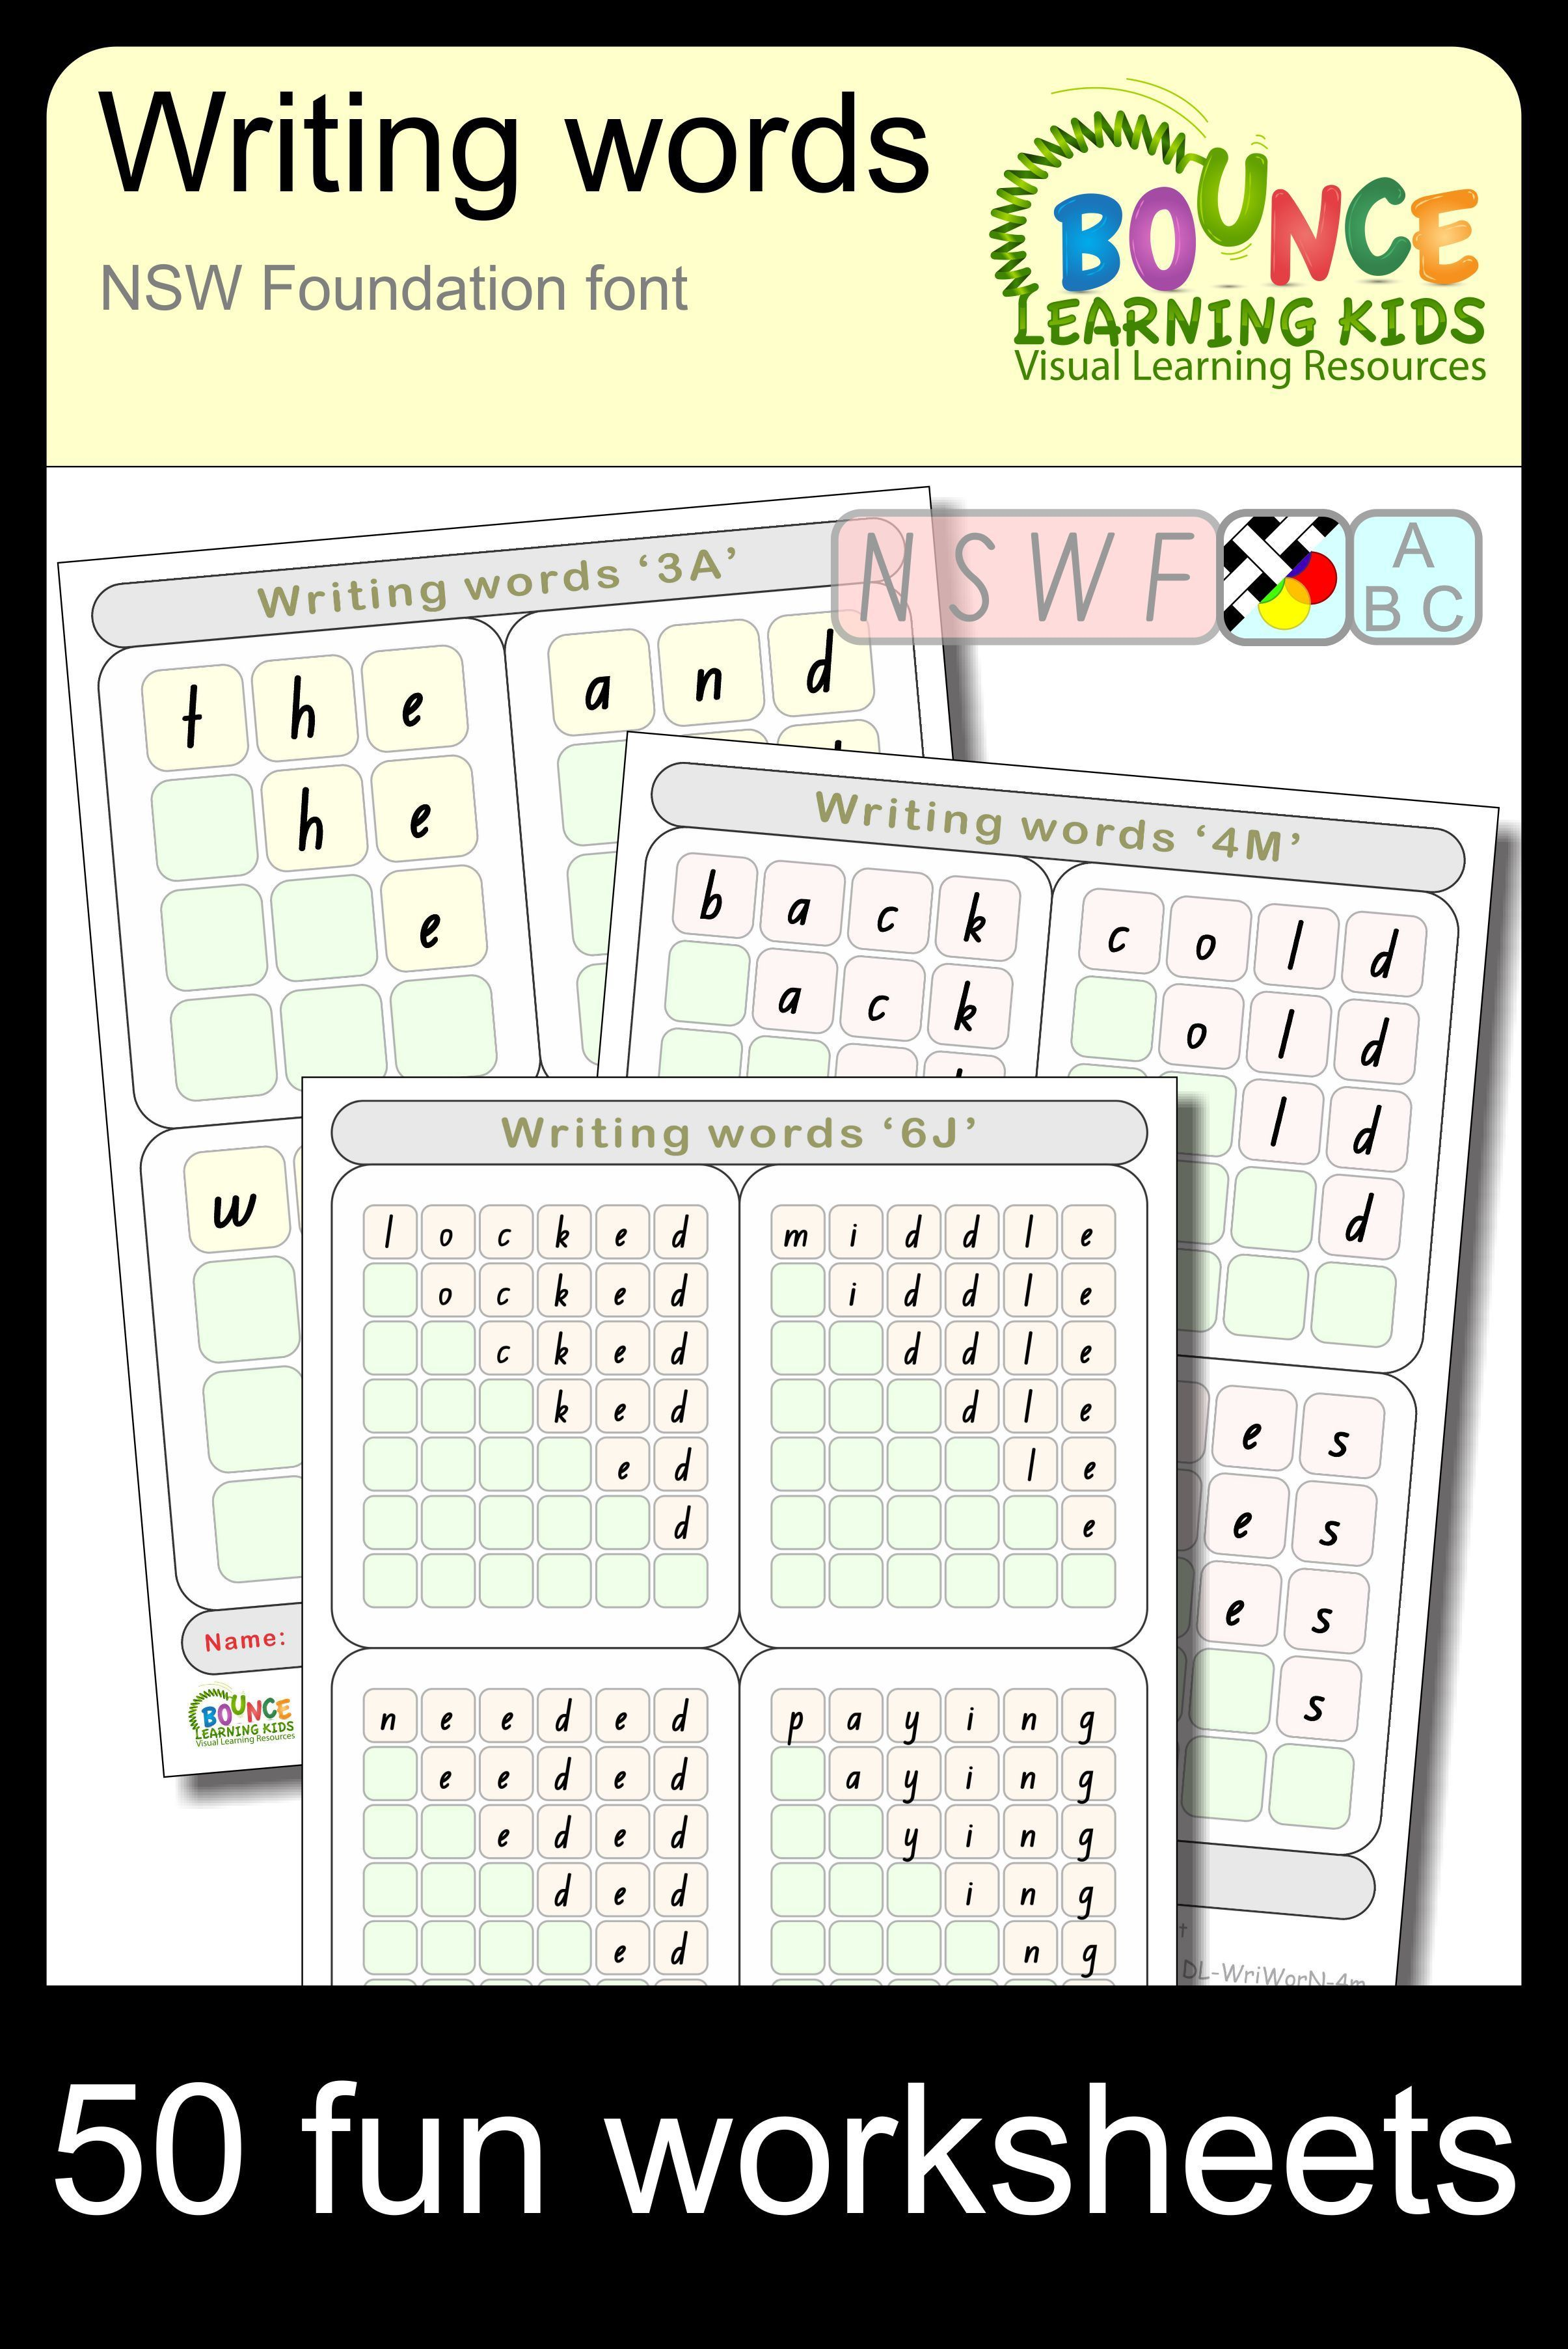 Practice Writing Words This Is A Fun Series Of Worksheets In Which You Have To Complete The Missing Letter Writing Words Writing Practice Learning Worksheets [ 3610 x 2410 Pixel ]